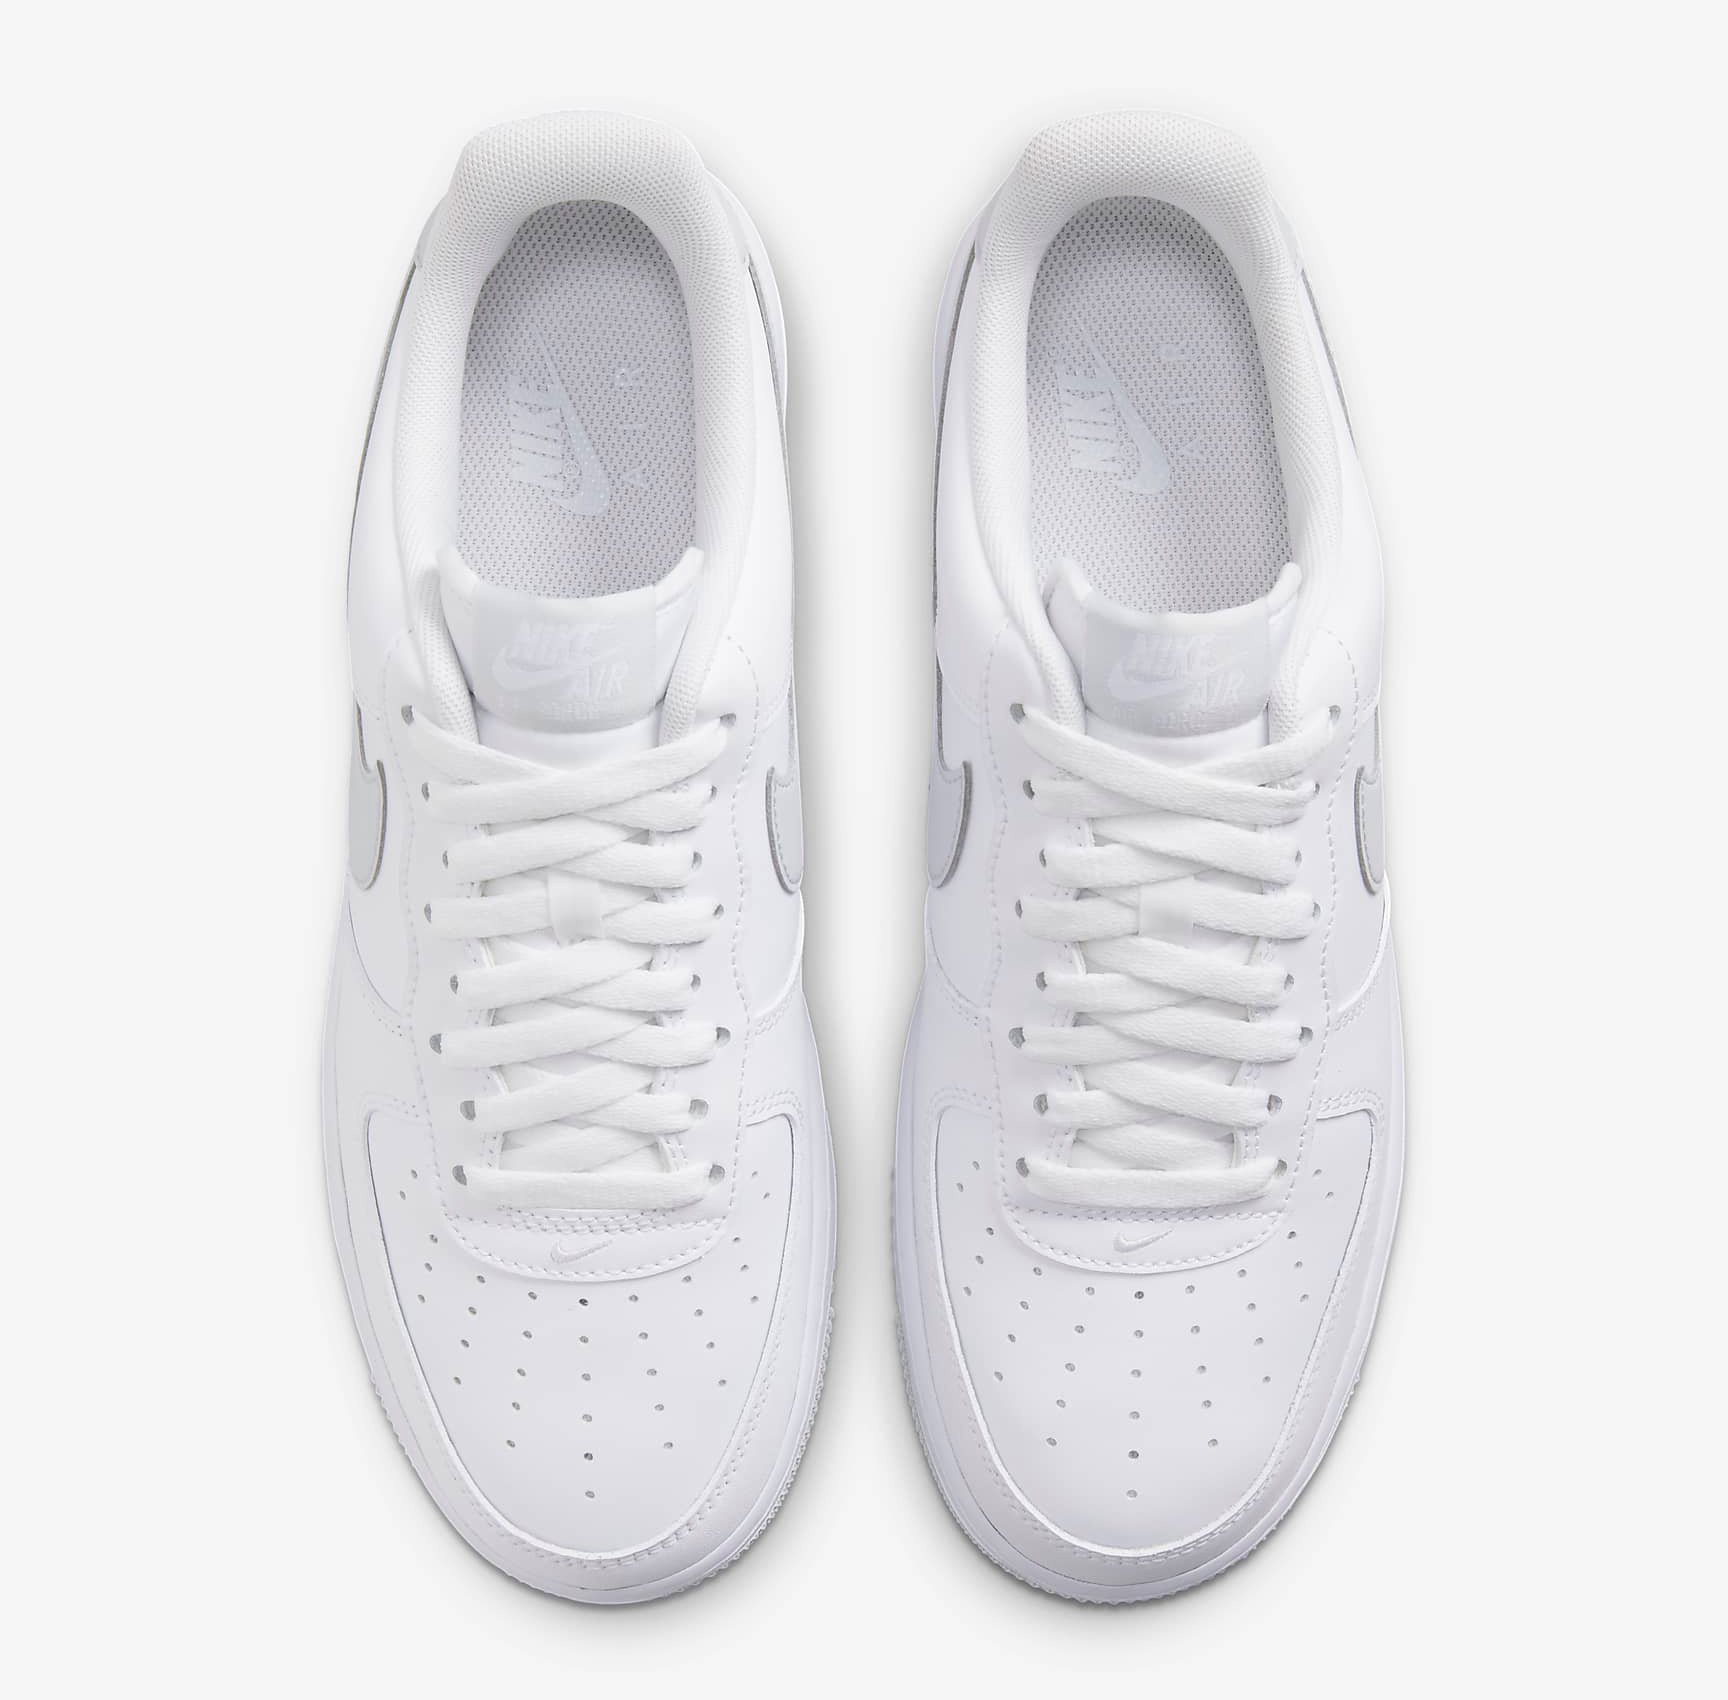 nike-air-force-1-low-white-pure-platinum-4